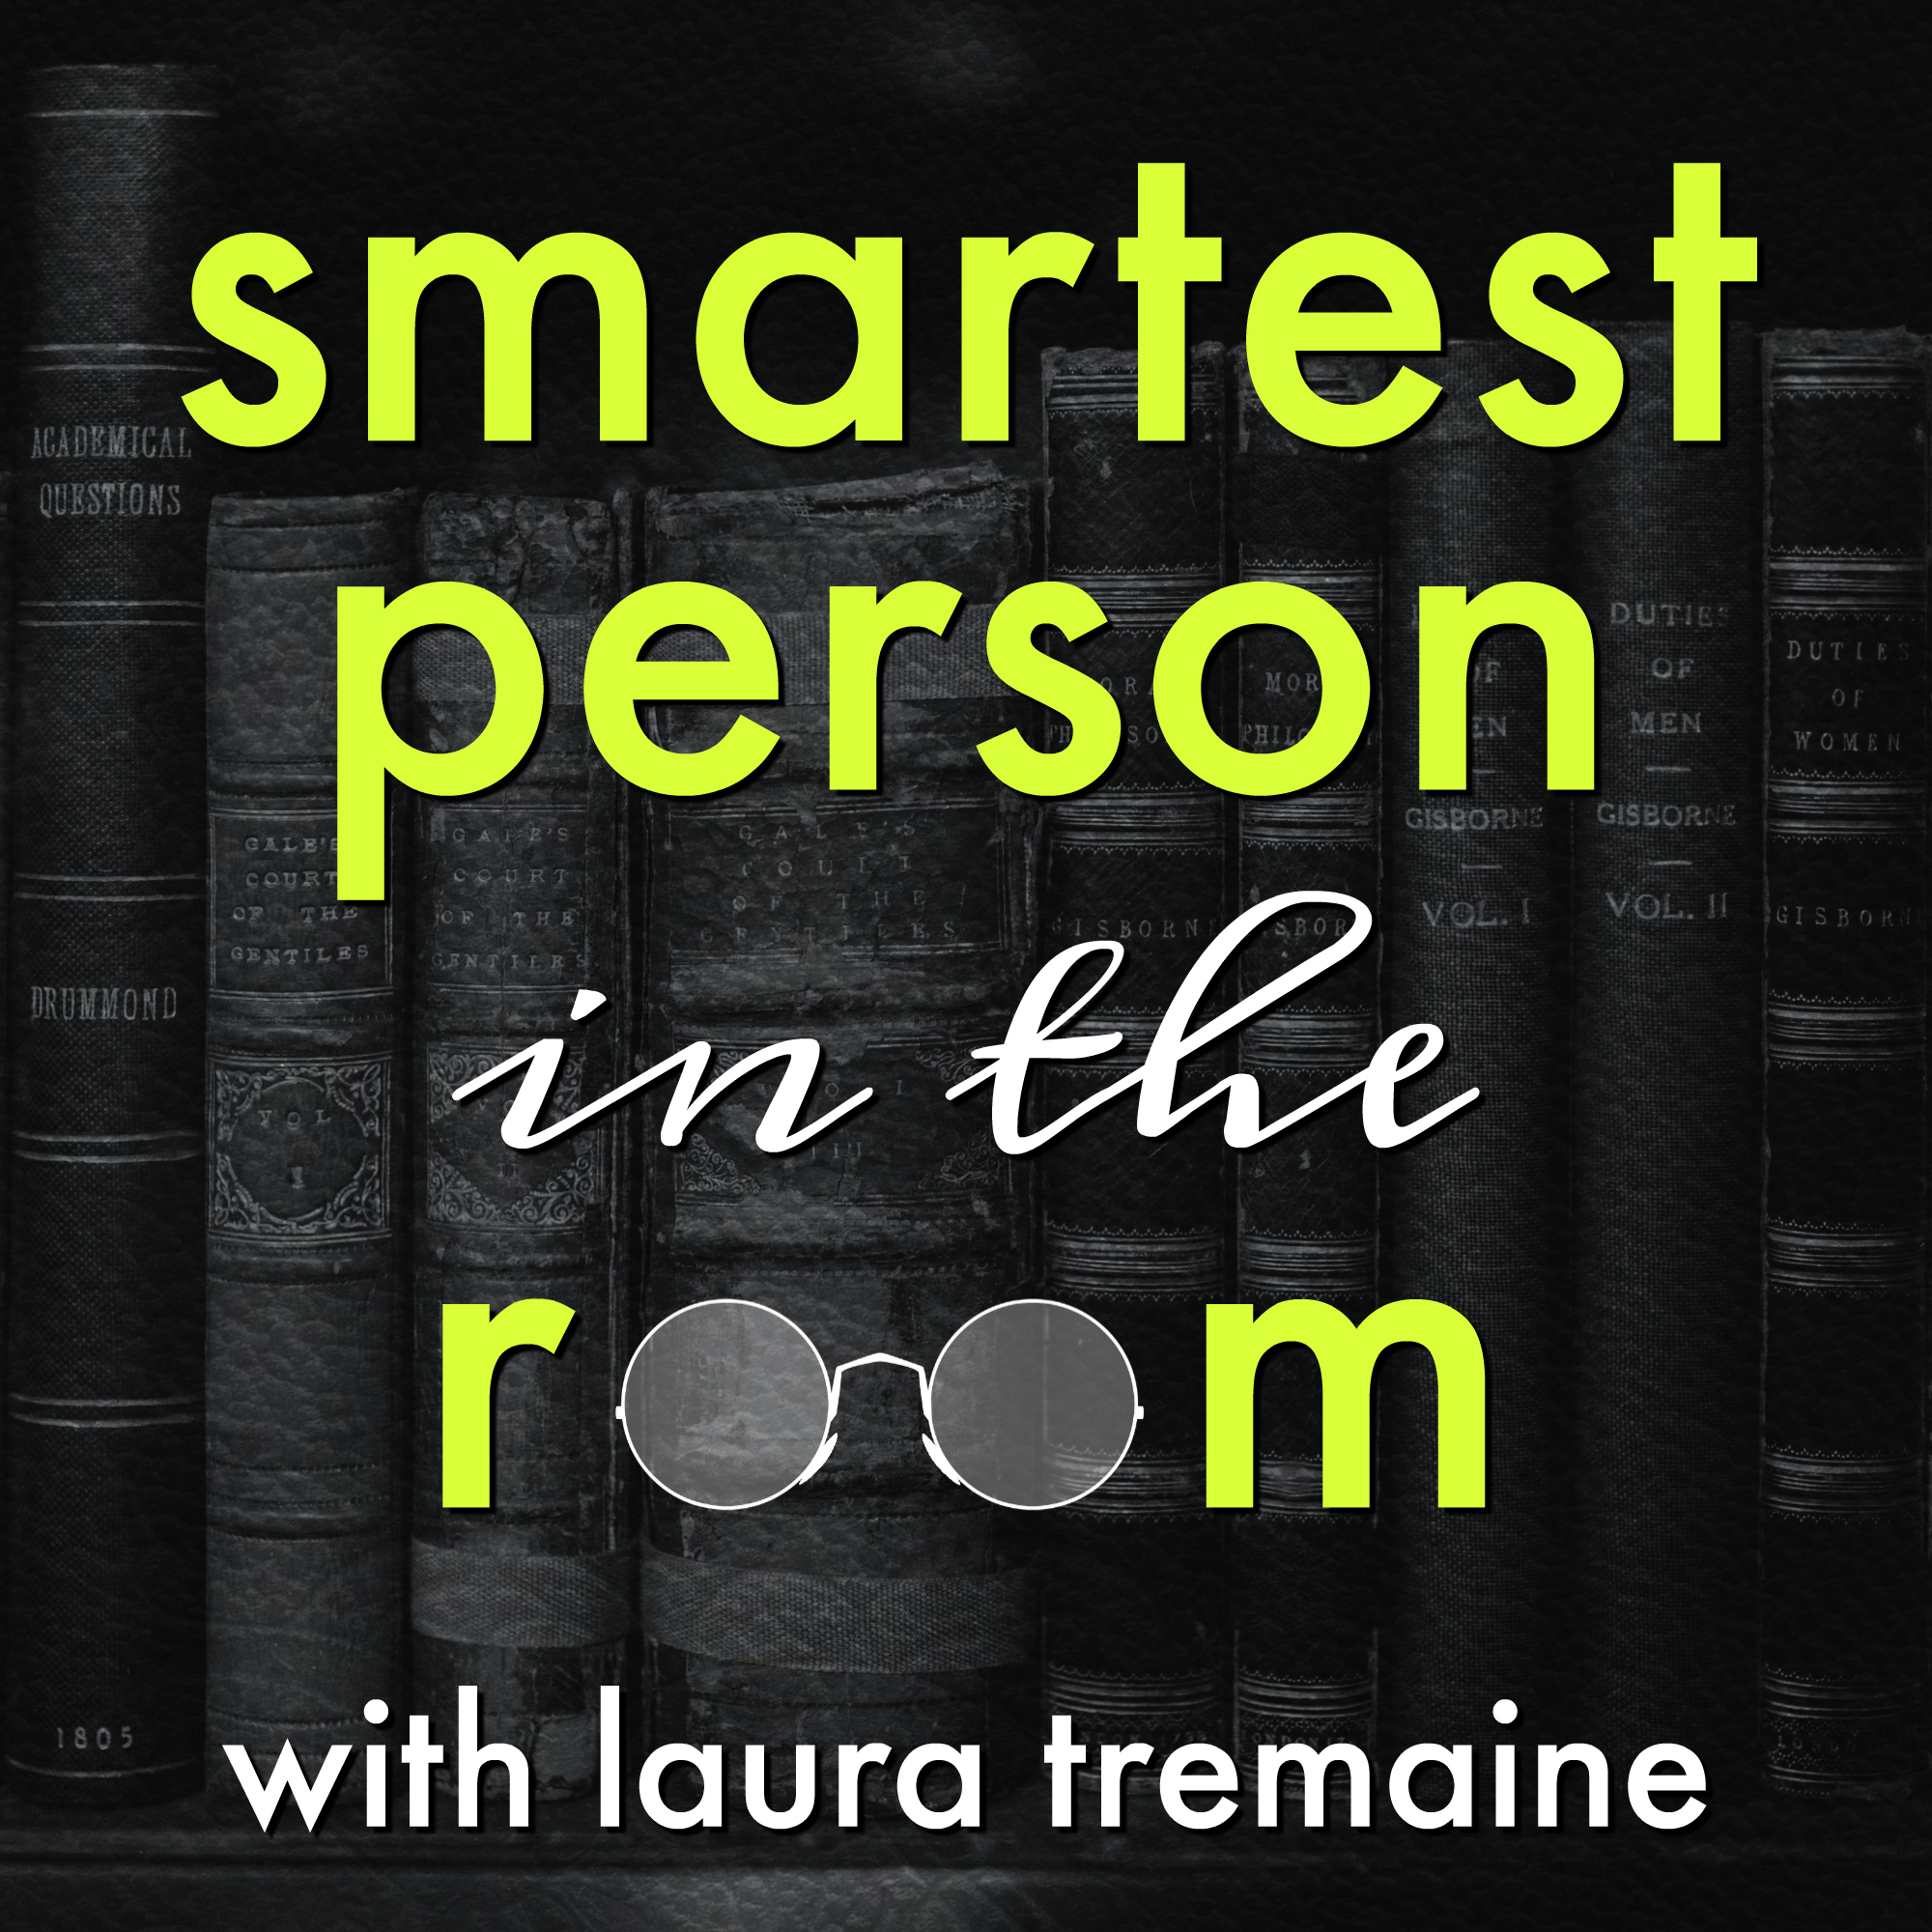 Smartest Person in the Room Podcast - In Laura Tremaine's popular anthology series podcast, she interviewed Emily and Nish about their interfaith friendship and the dynamics between evangelicals and Mormons.Click here to listen!